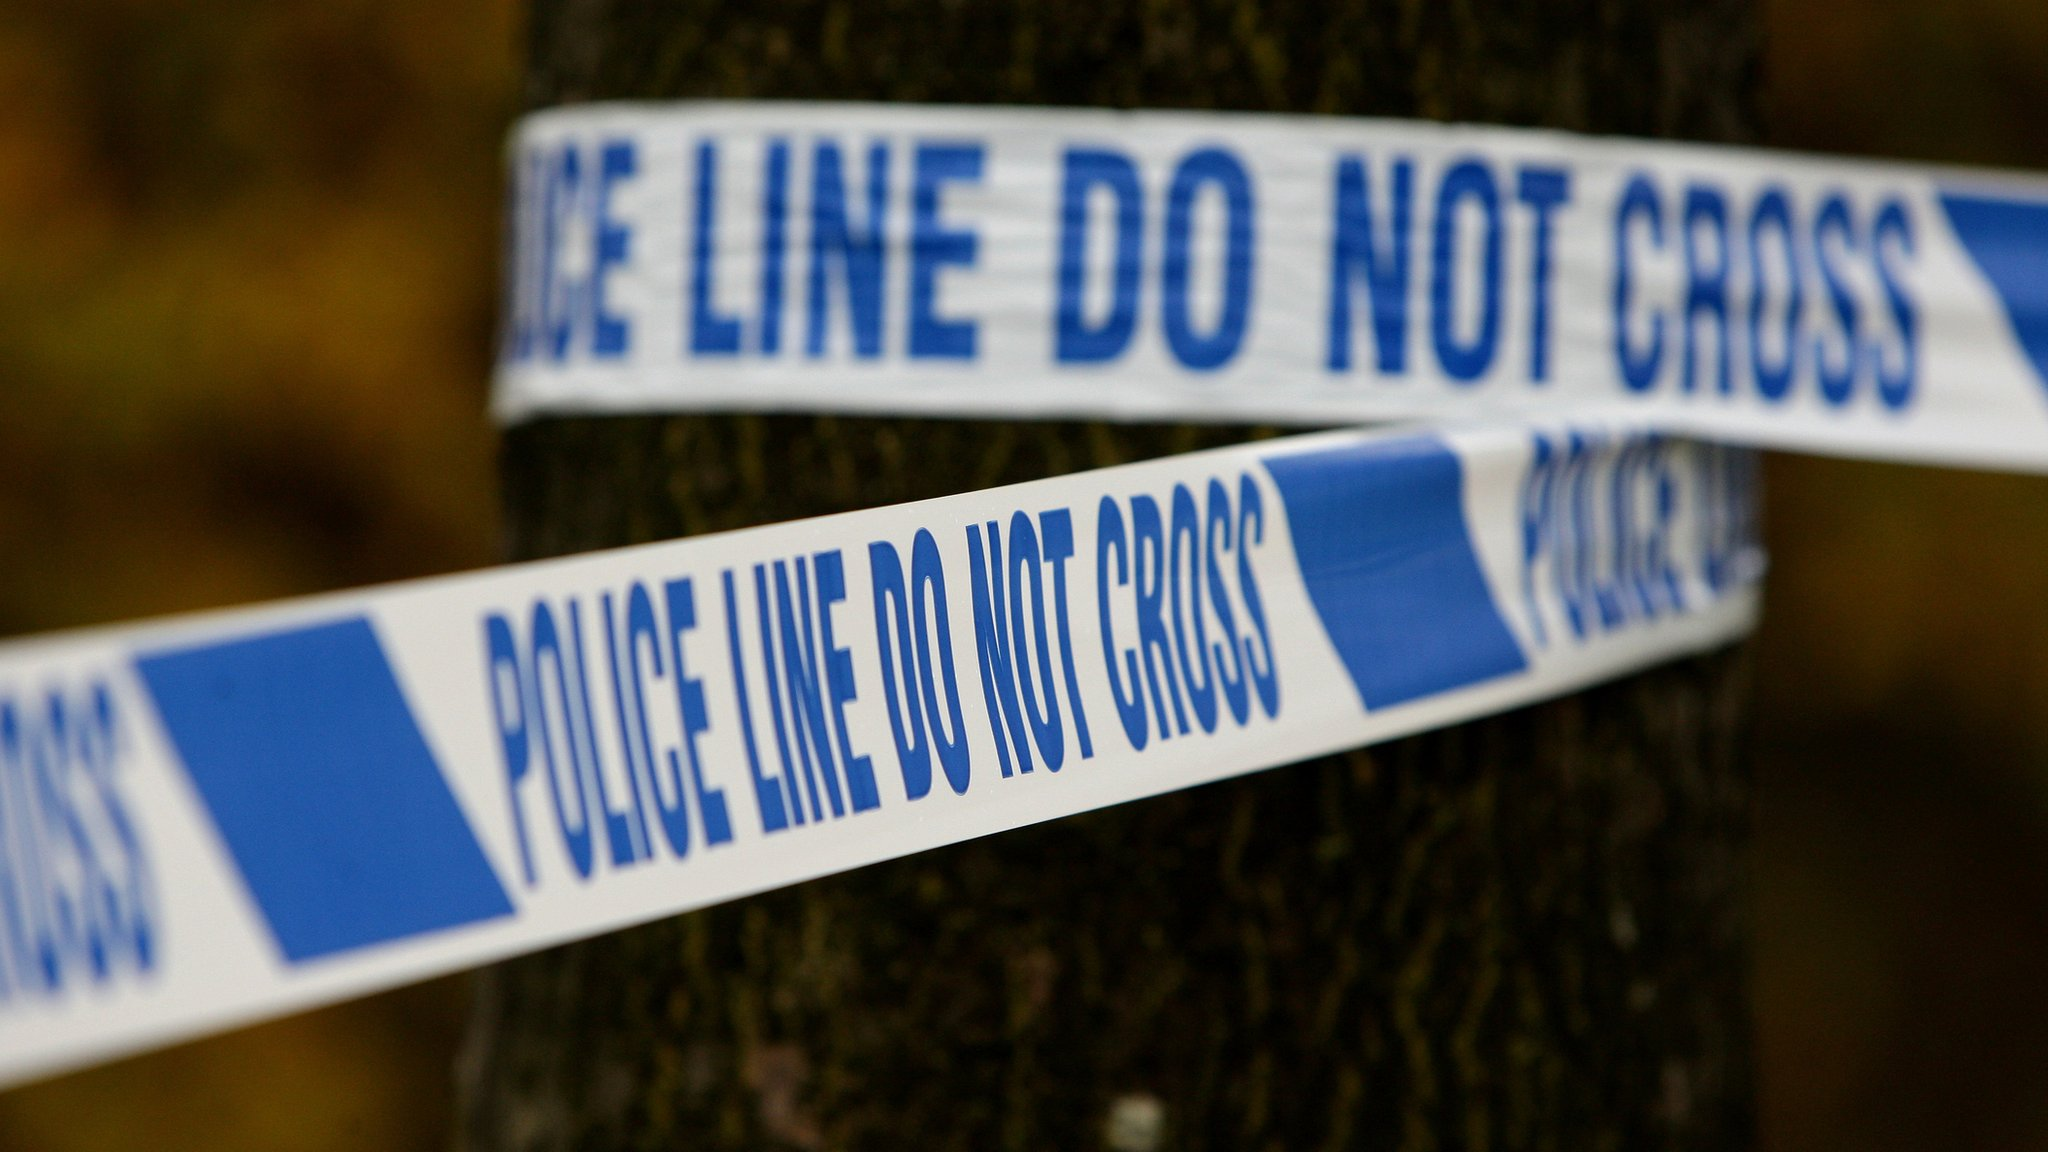 Ramsgate boys, 15, held over 'extreme right' terror